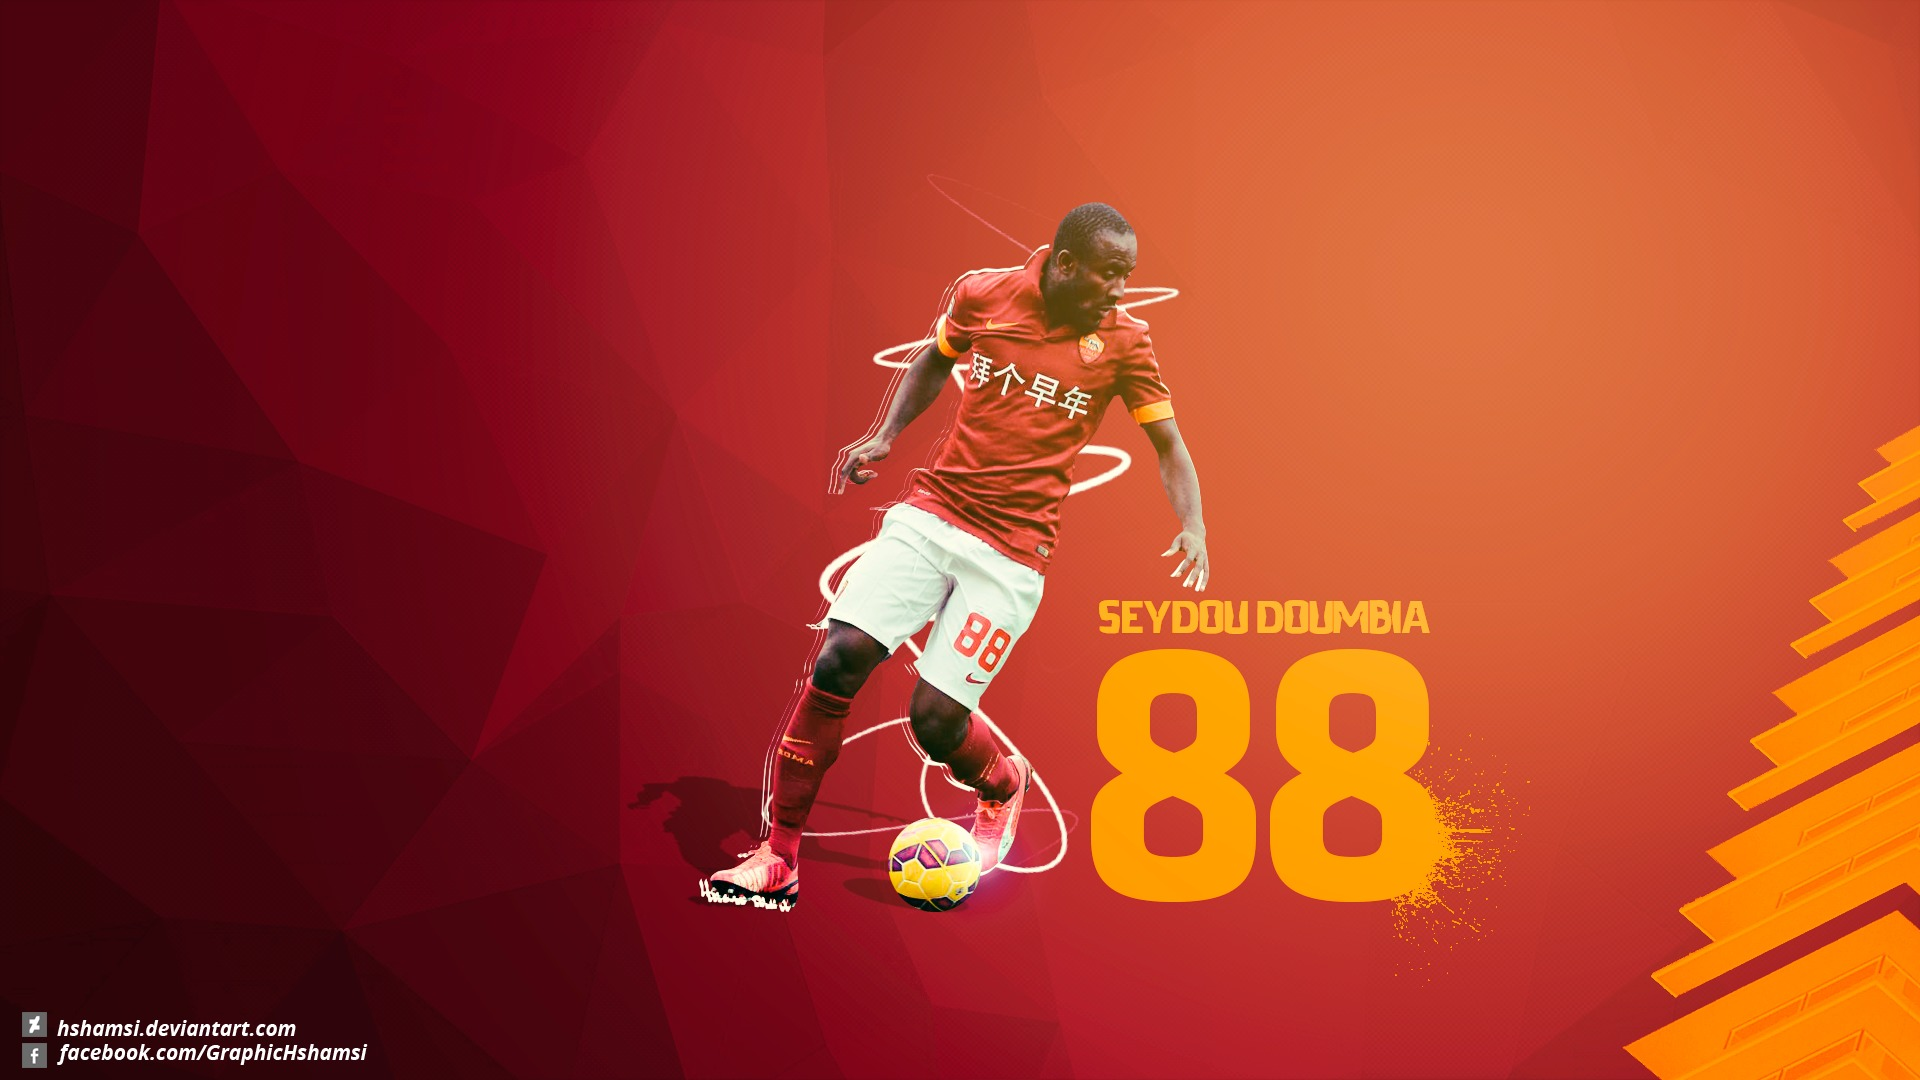 Download wallpaper graphic Seydou Doumbia Seydou Doumbia sport